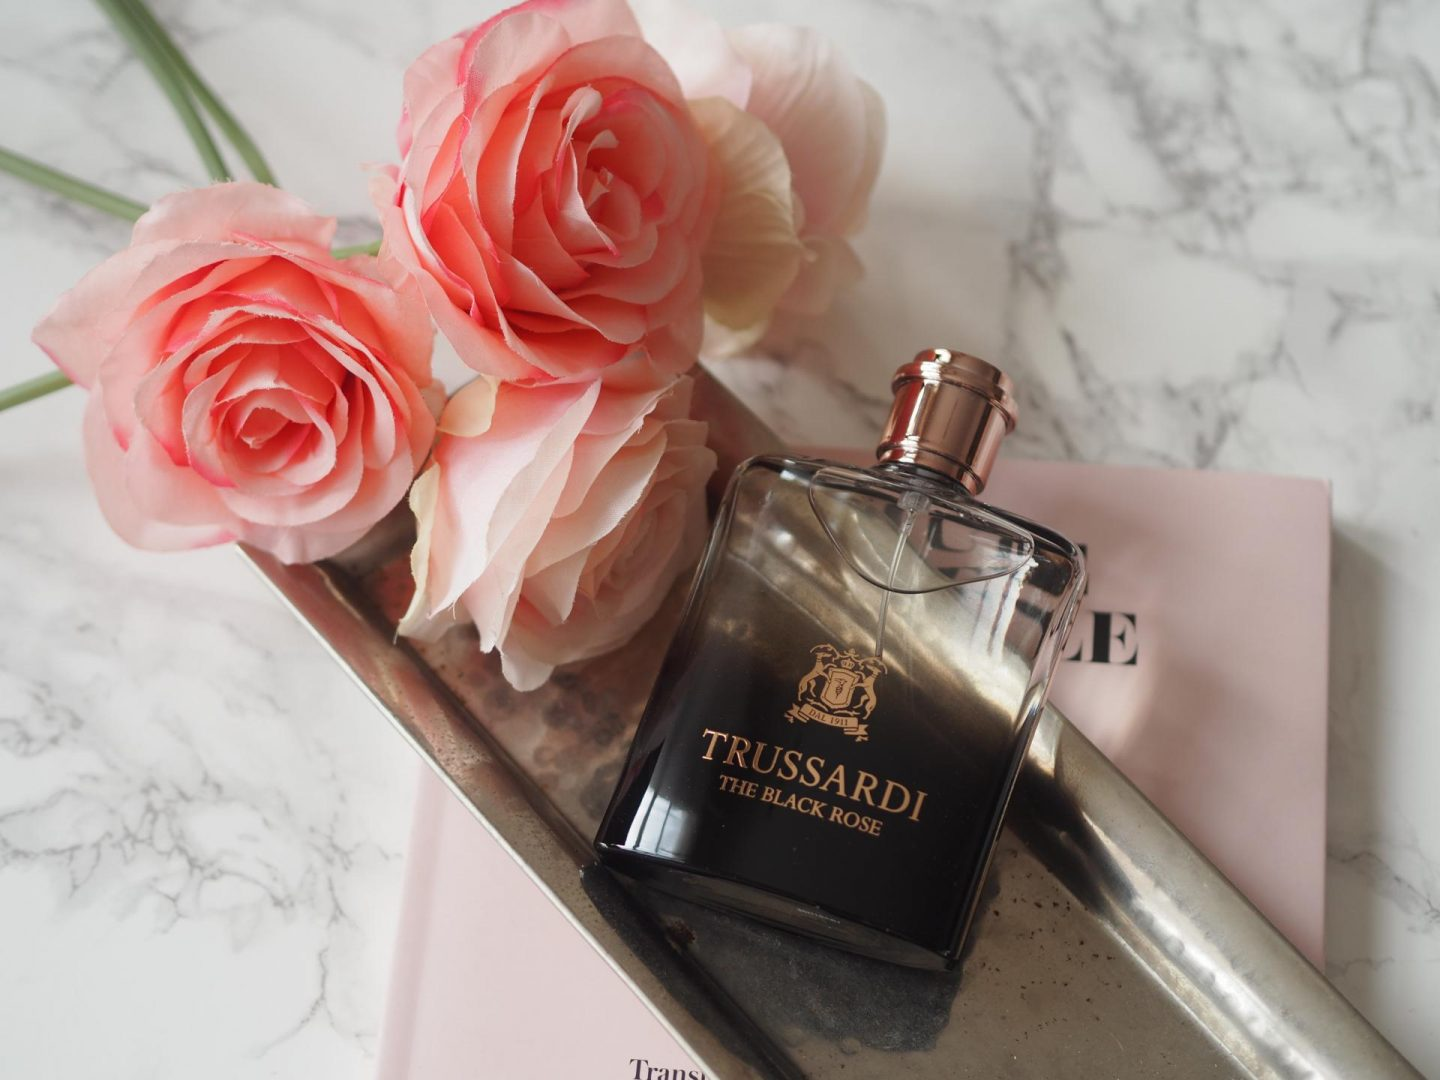 All Around The World Beauty - Product: Trussardi The Black Rose and ARound the world beauty